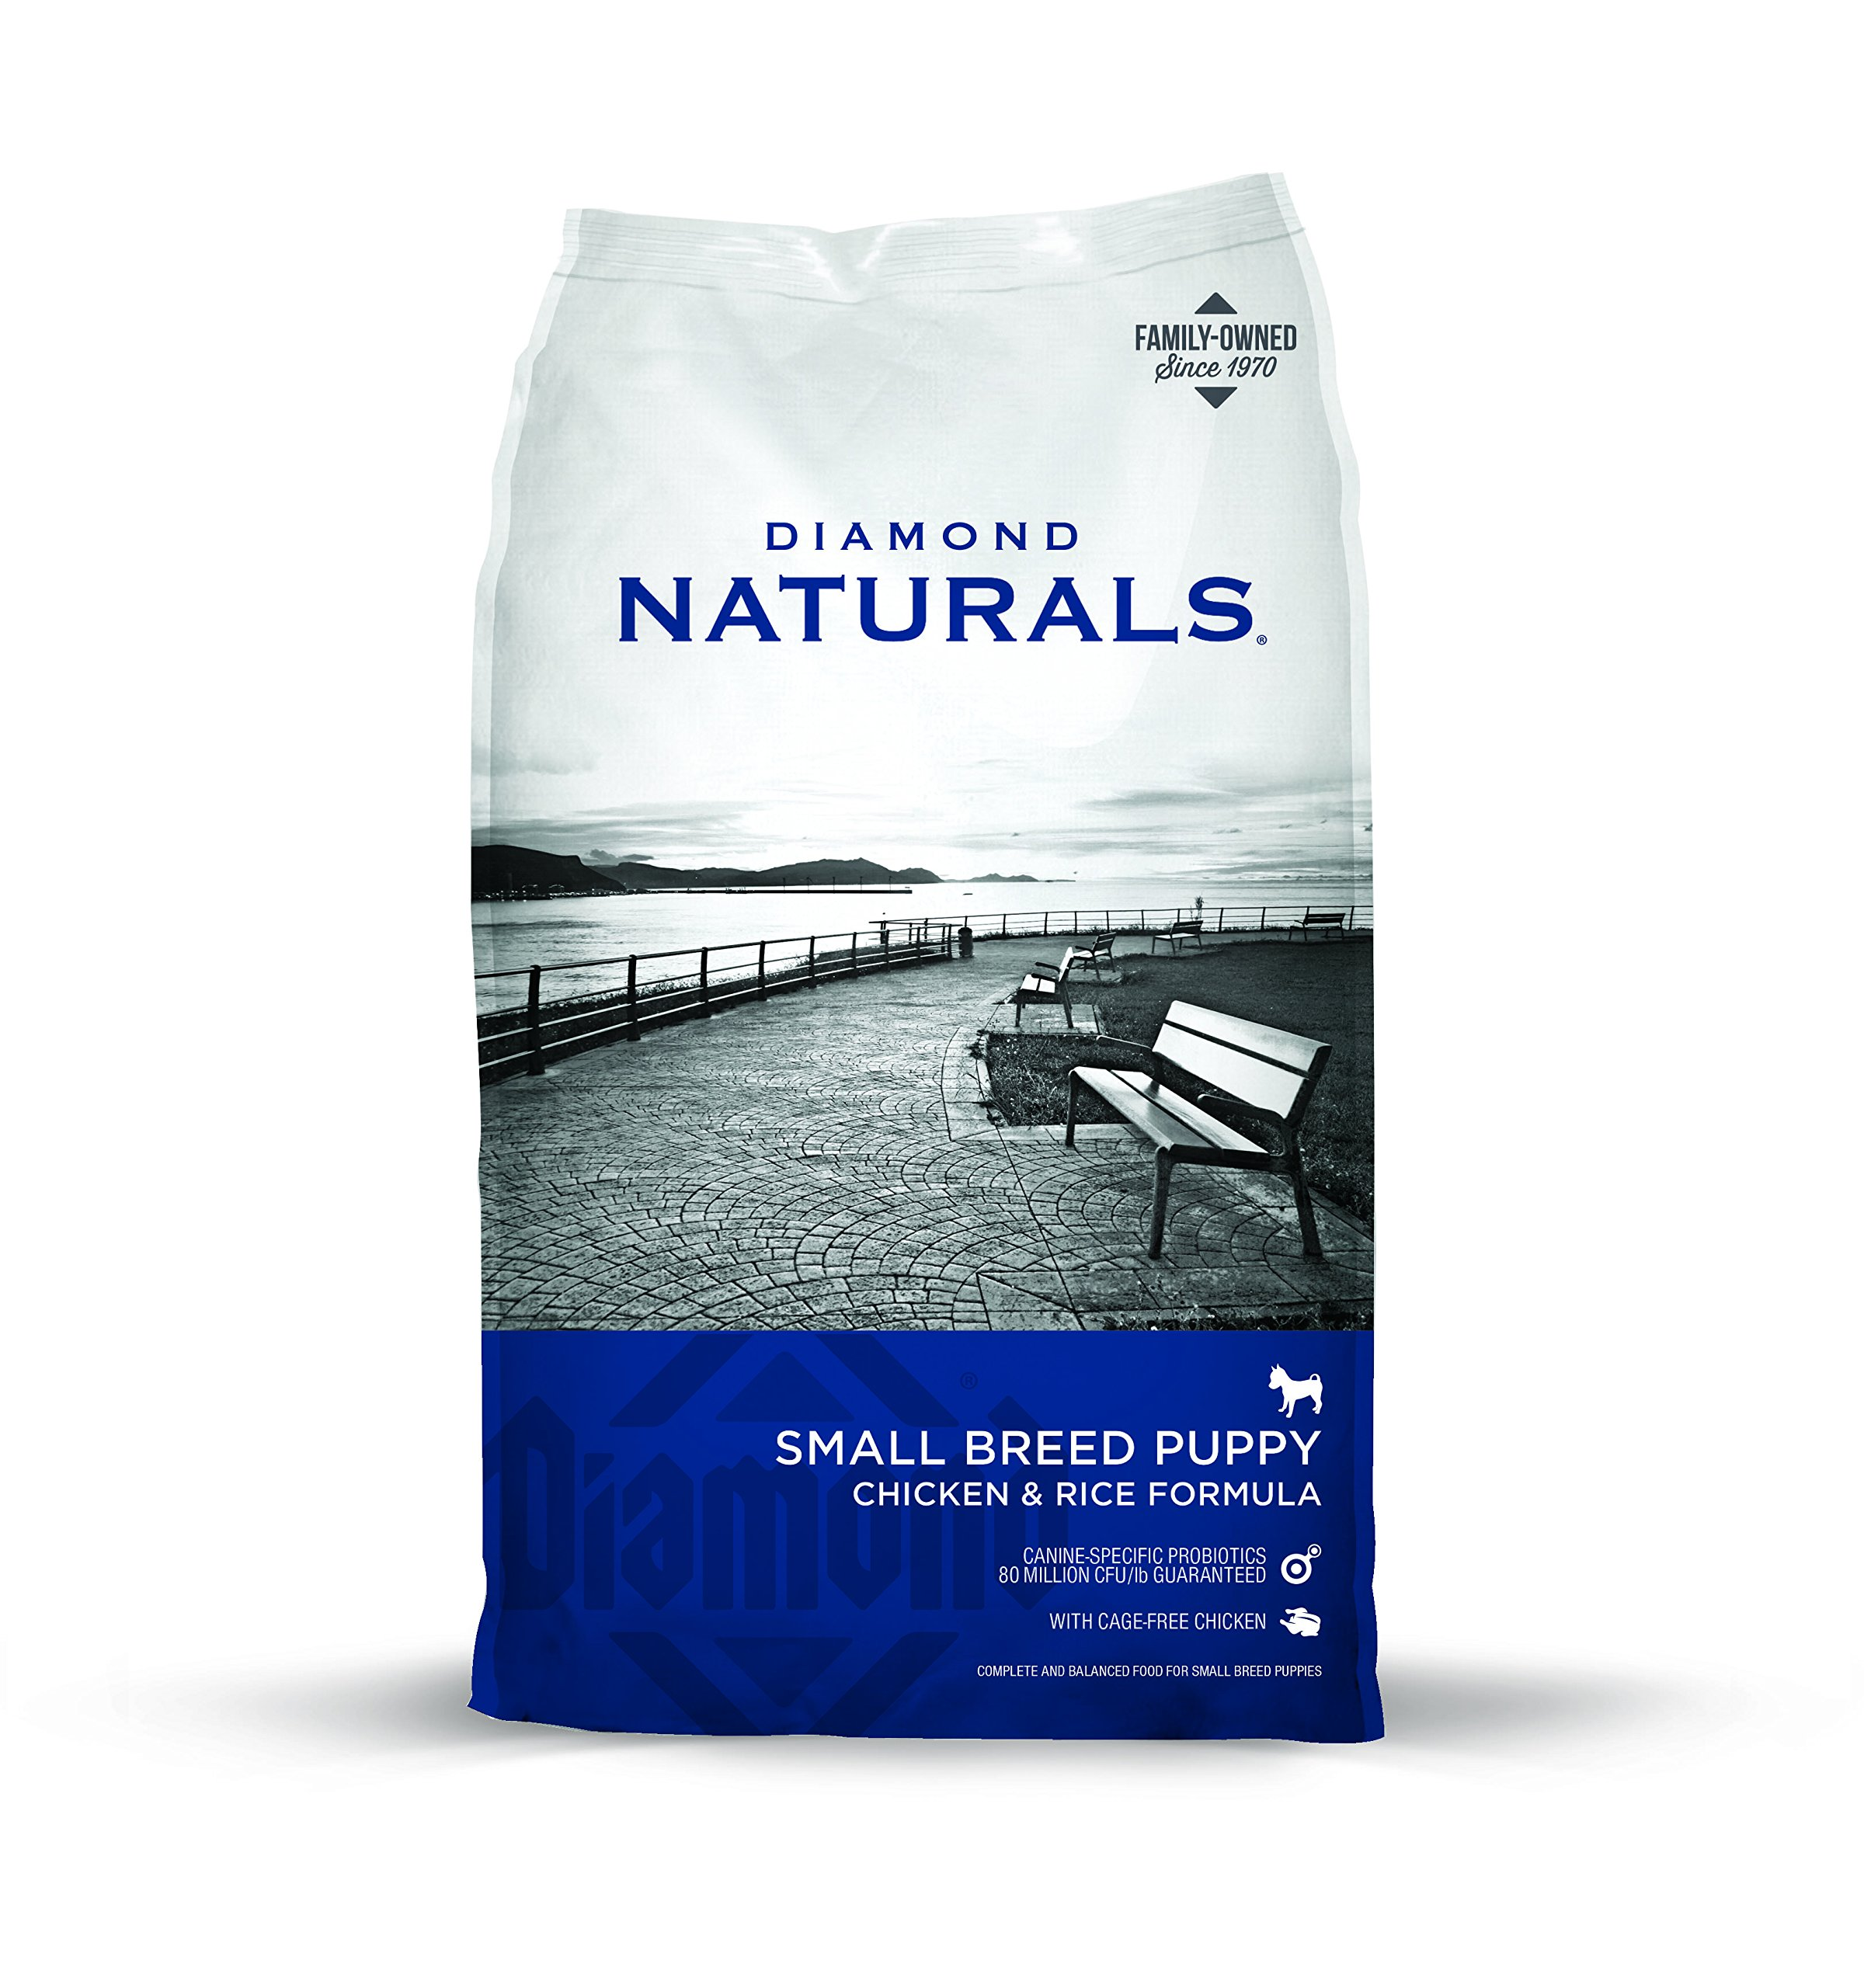 Diamond Naturals Small Breed Puppy Real Meat Recipe Dry Dog Food with Natural Ingredients and Real Cage Free Chicken